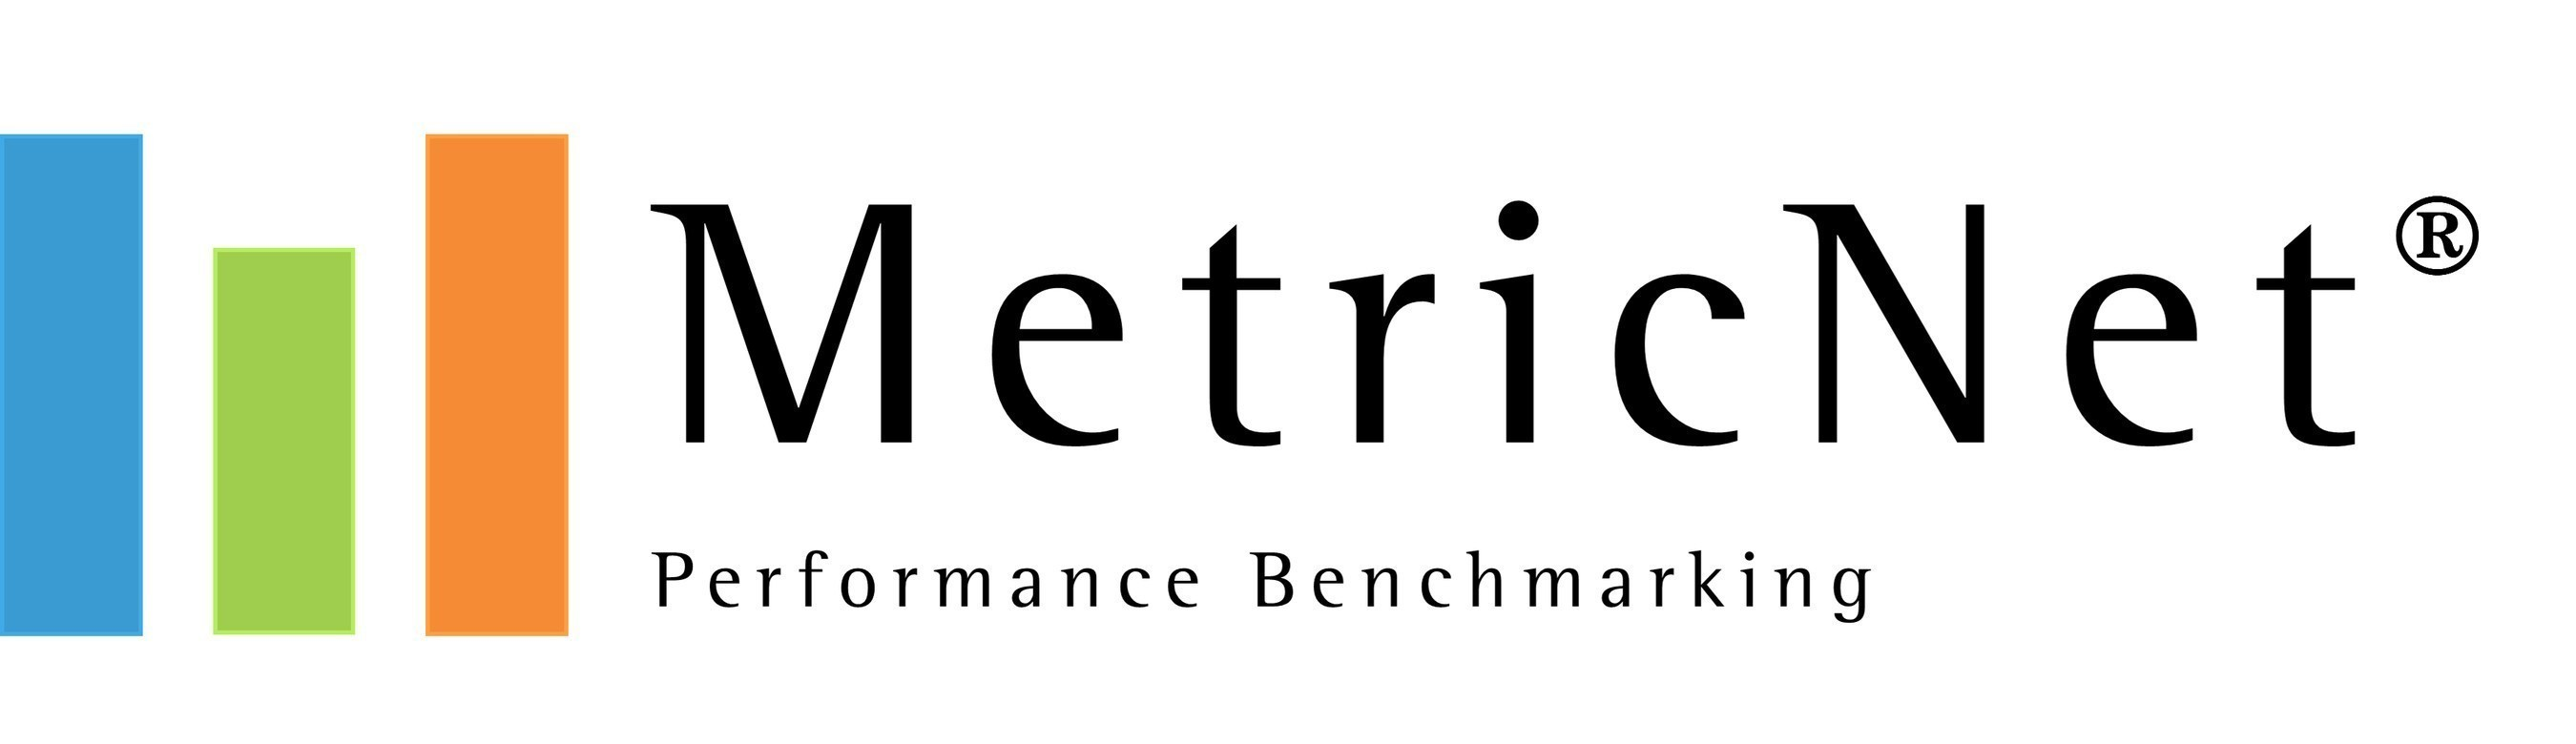 MetricNet Awarded Two Speaking Slots at HDI's 2017 Annual Conference